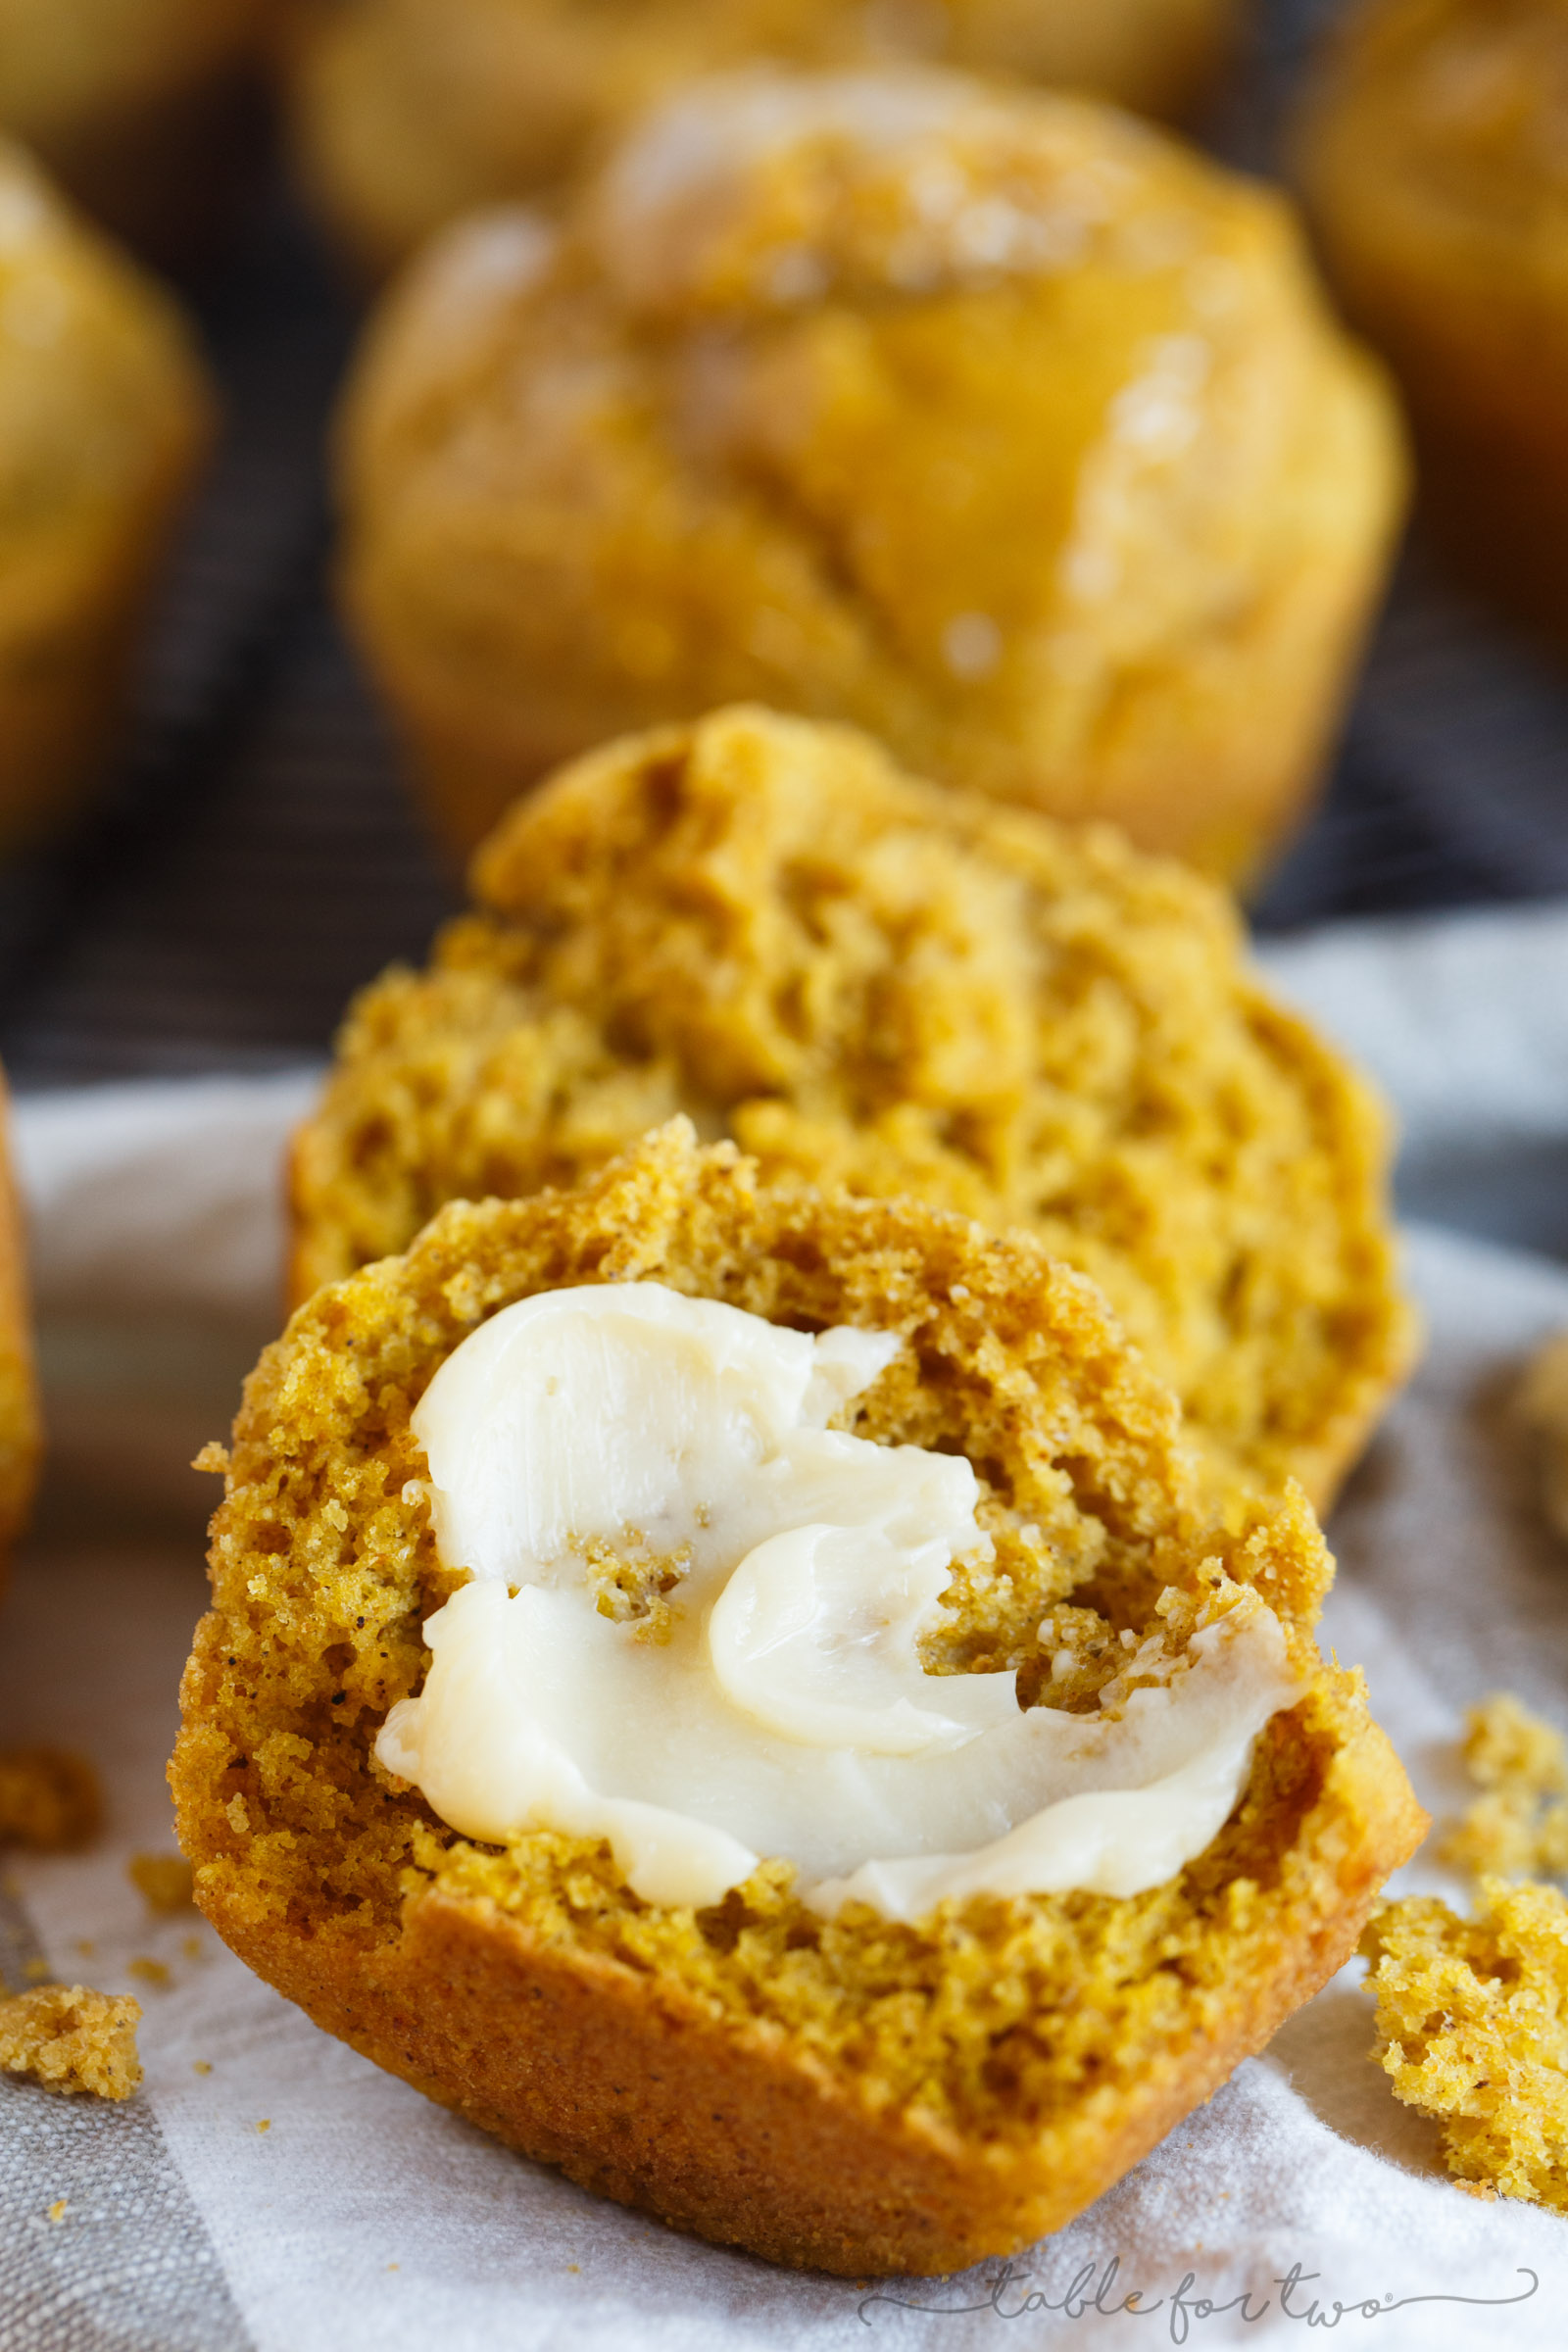 Ditch the dinner rolls and give these pumpkin cornbread muffins a shot! The perfect companion to your dinner table or holiday meal. Warm cornbread muffins slathered in butter are the way to go!